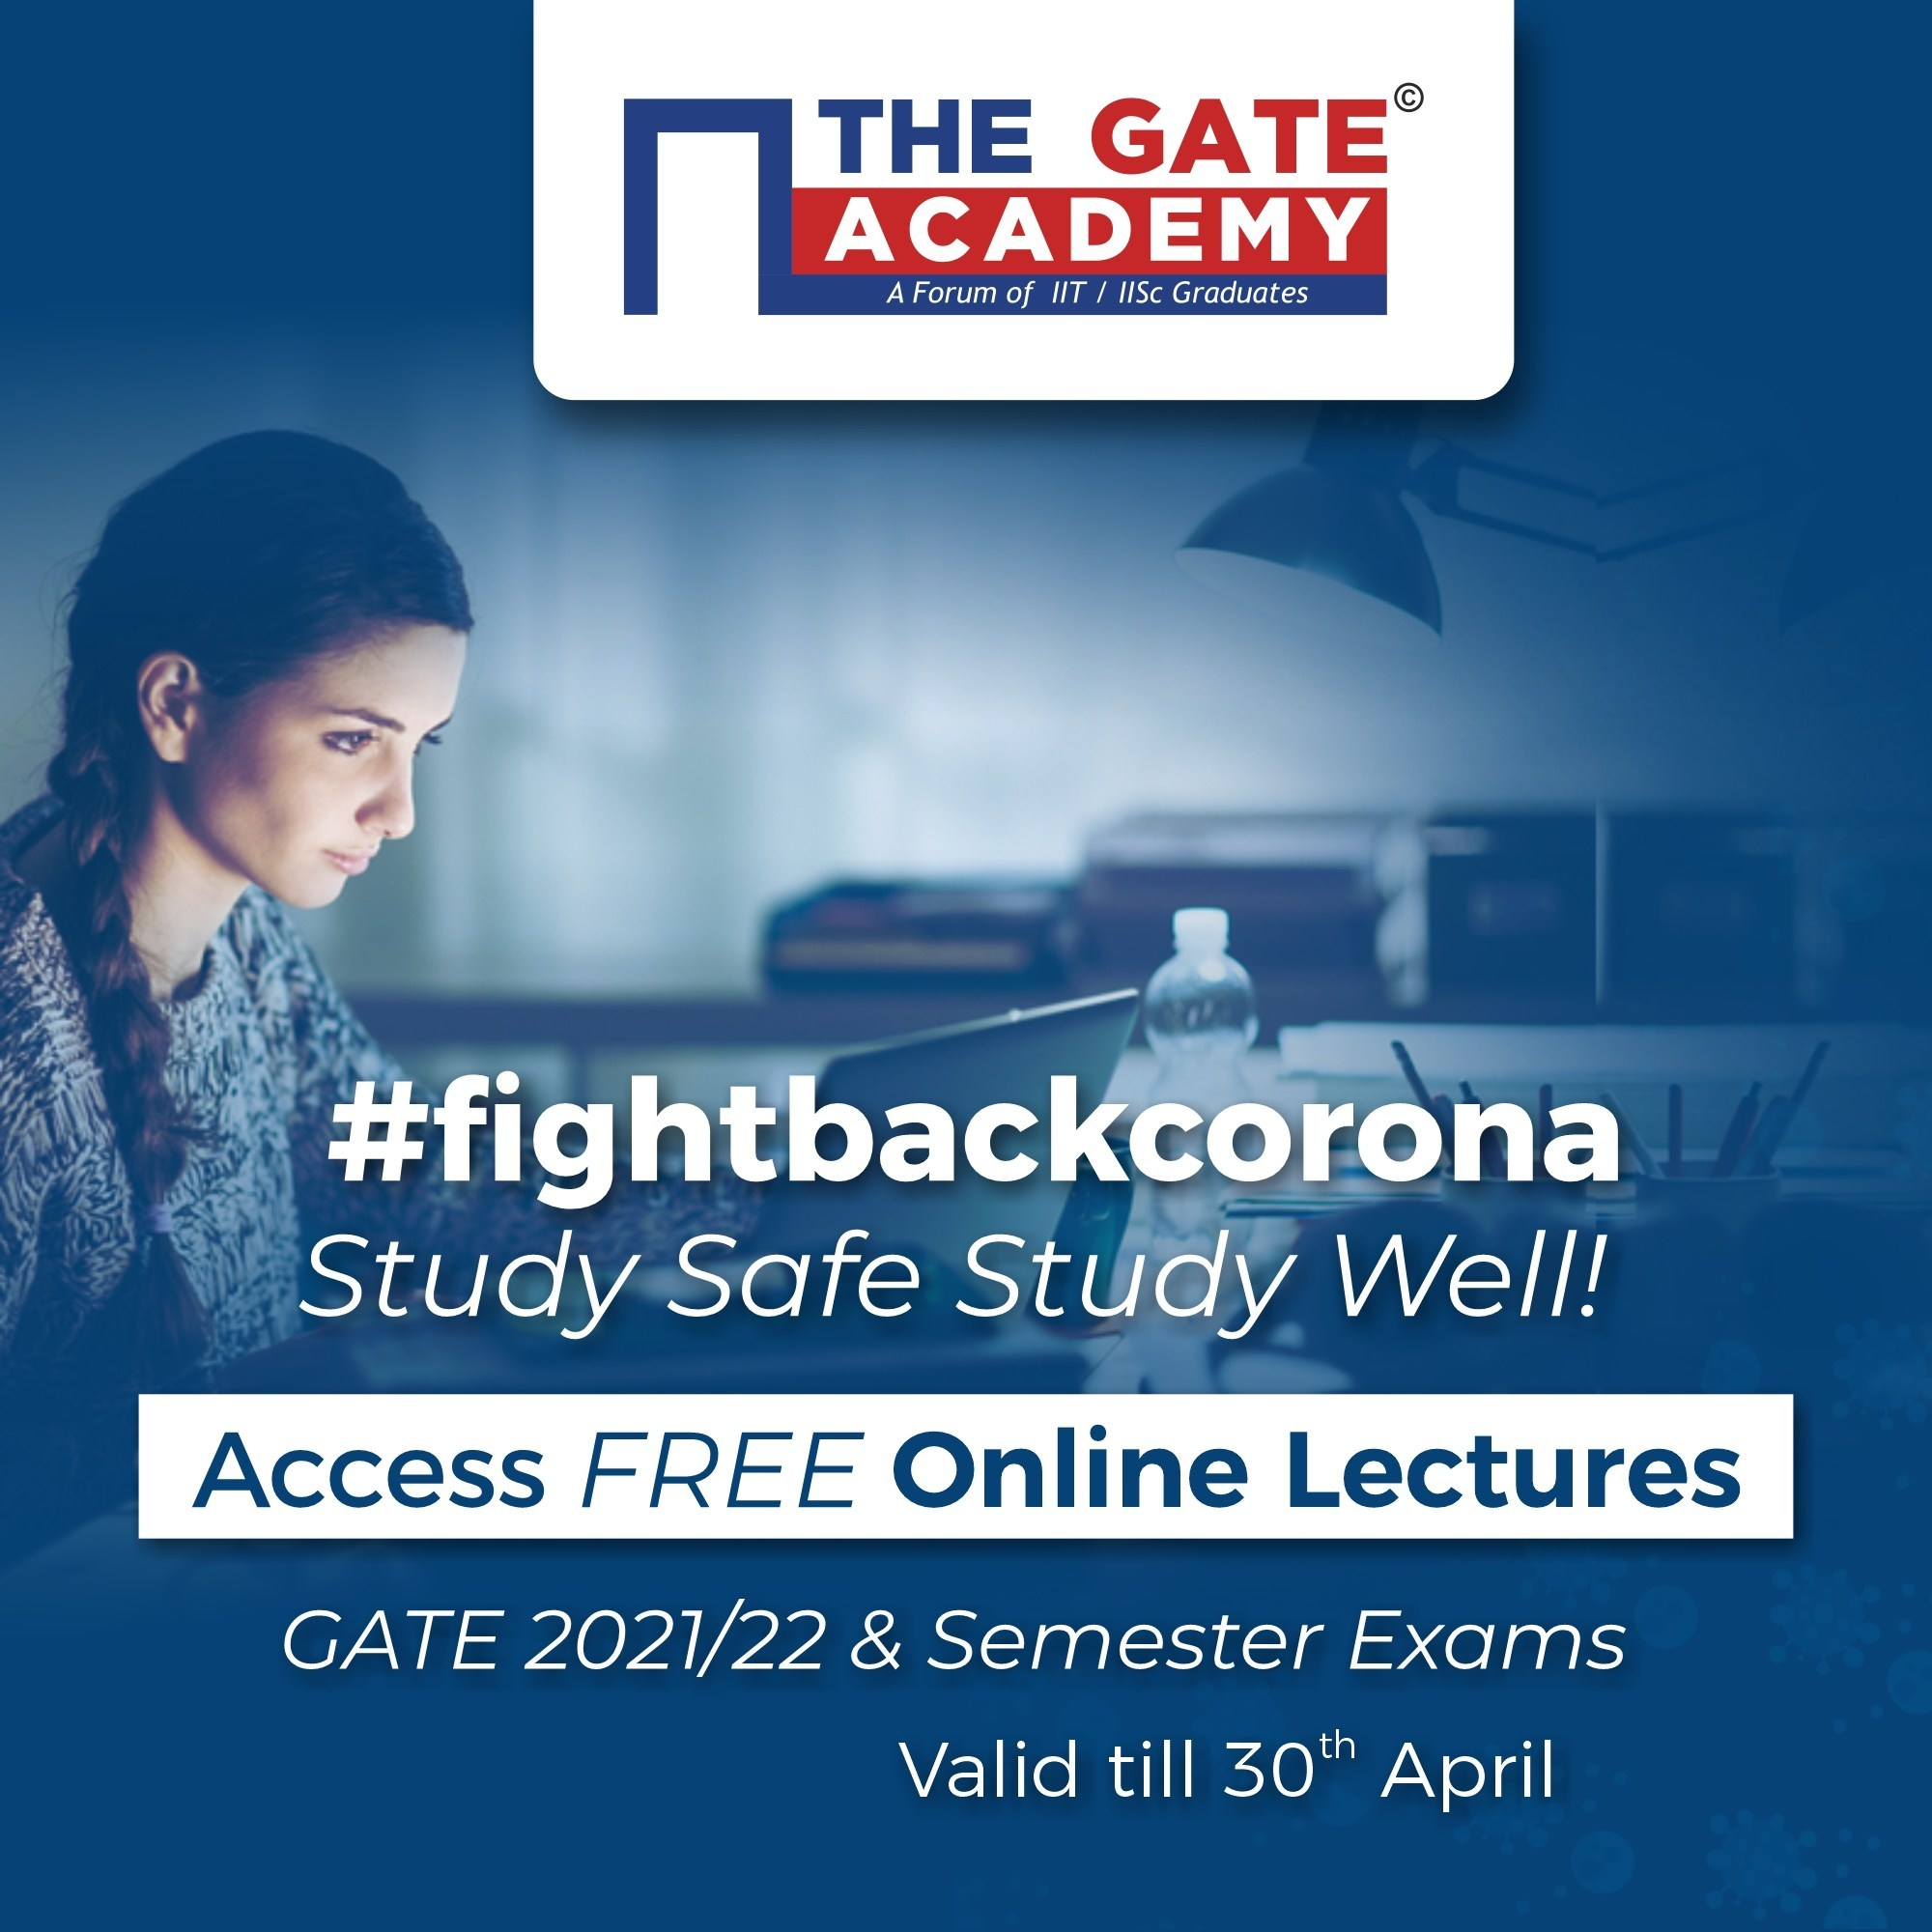 THE GATE ACADEMY | Free ACCESS